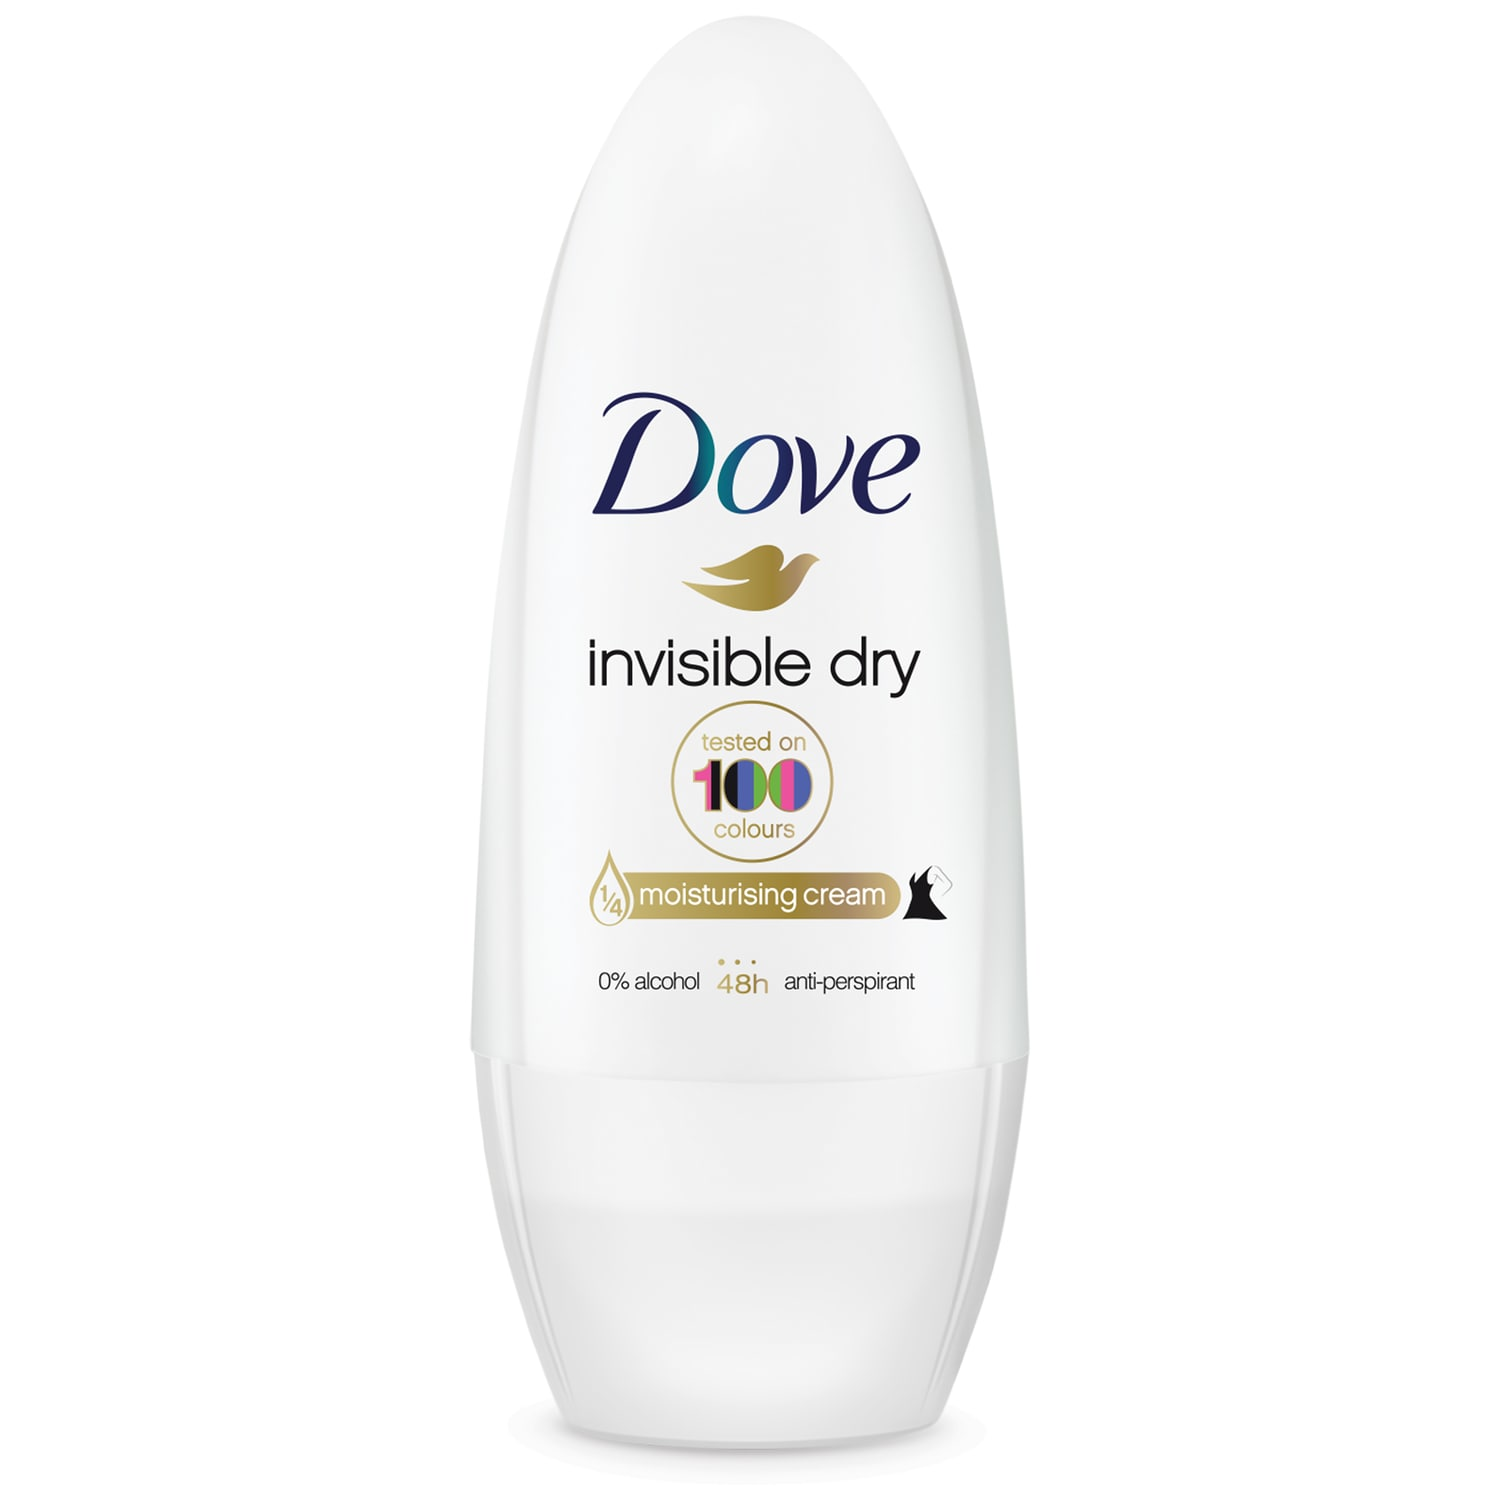 Dove Deo Roll On Invisible Dry 48h Clean Touch Αποσμητικό 48ωρης Αντιιδρωτικής Προστασίας Χωρίς Λευκά Σημάδια στα Ρούχα 50ml